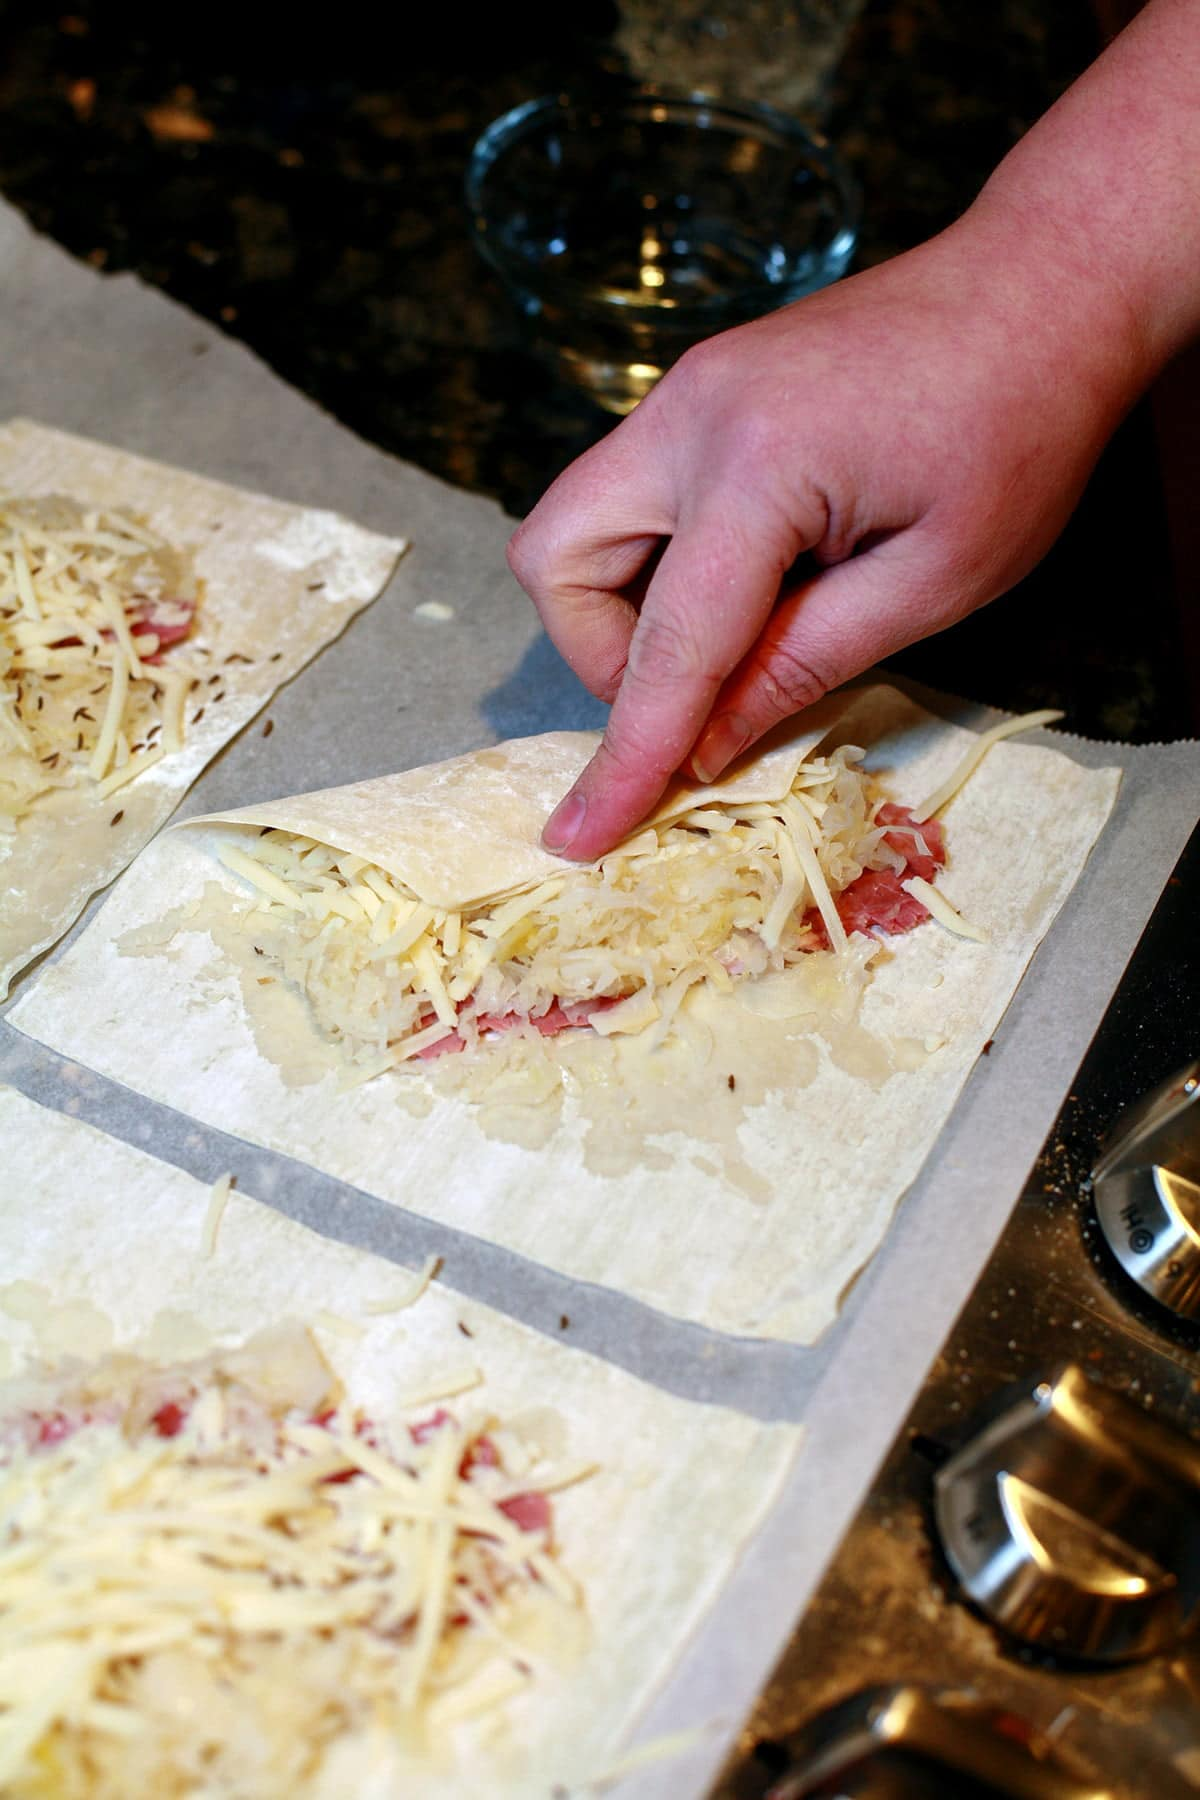 A hand is shown folding a corner of a wonton wrapper over the filling that's arranged in the middle of that wrapper.